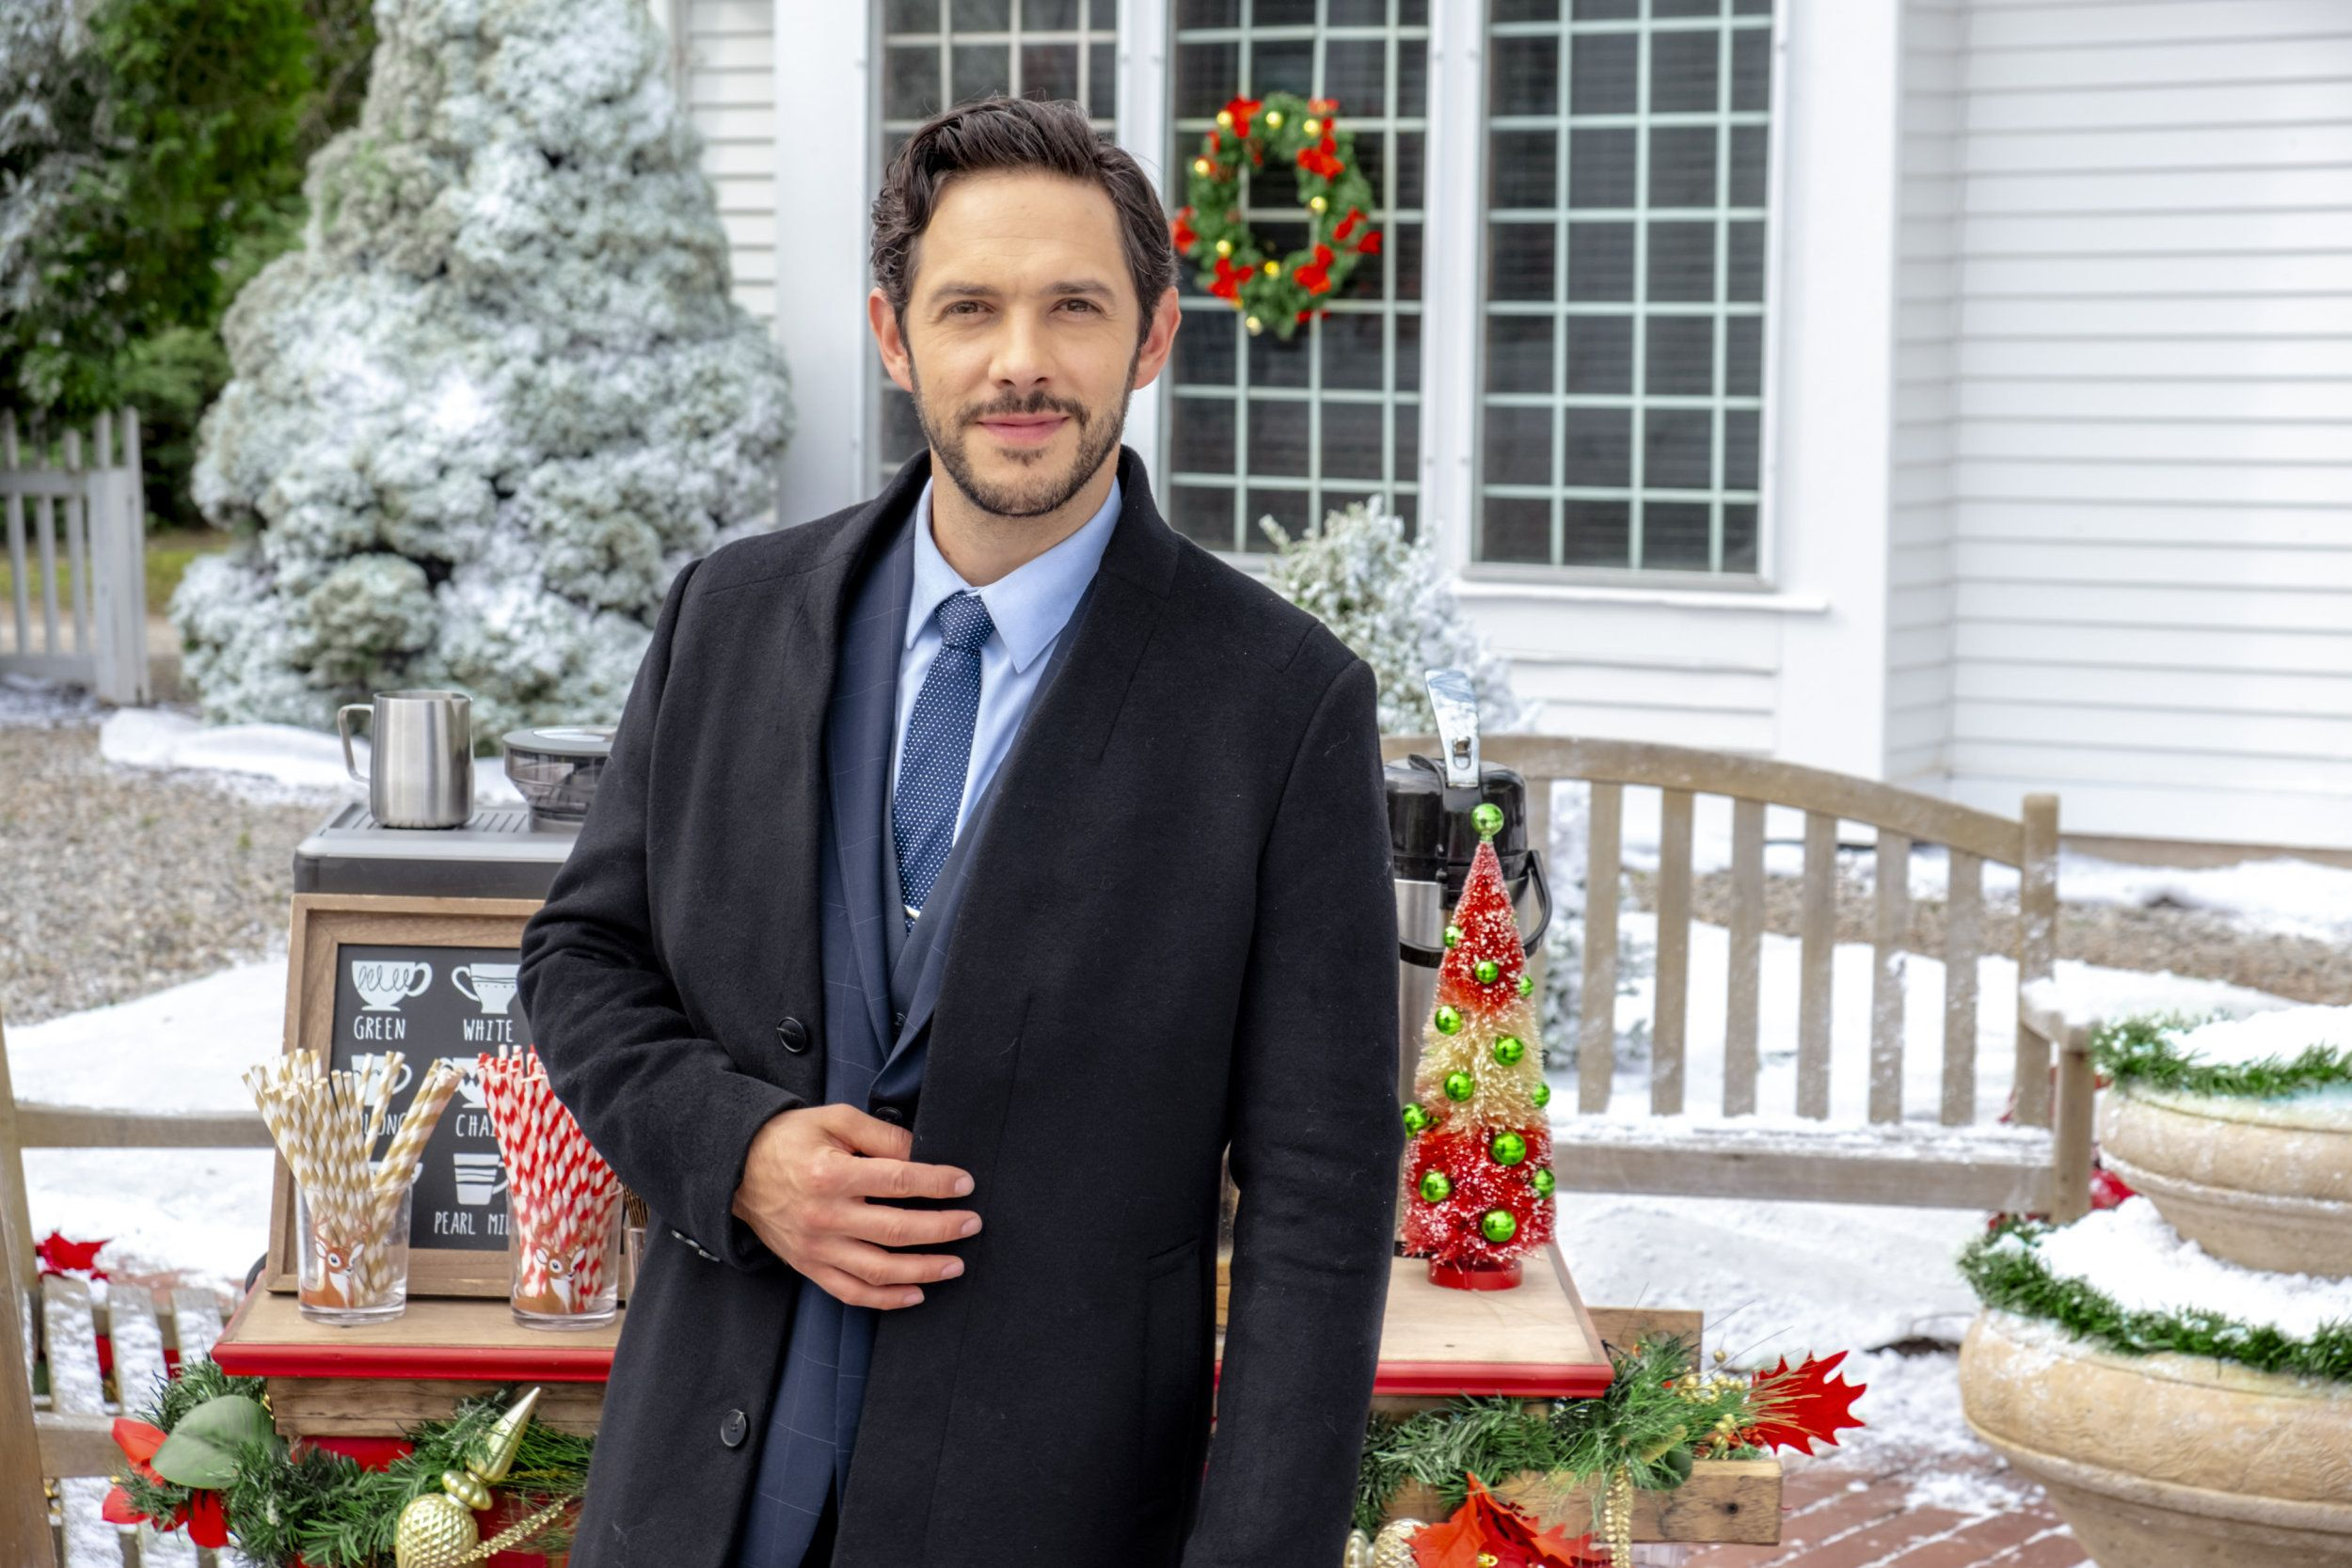 Christmas At Pemberley Manor Cast.Check Out Photos From The Hallmark Channel Movie Christmas